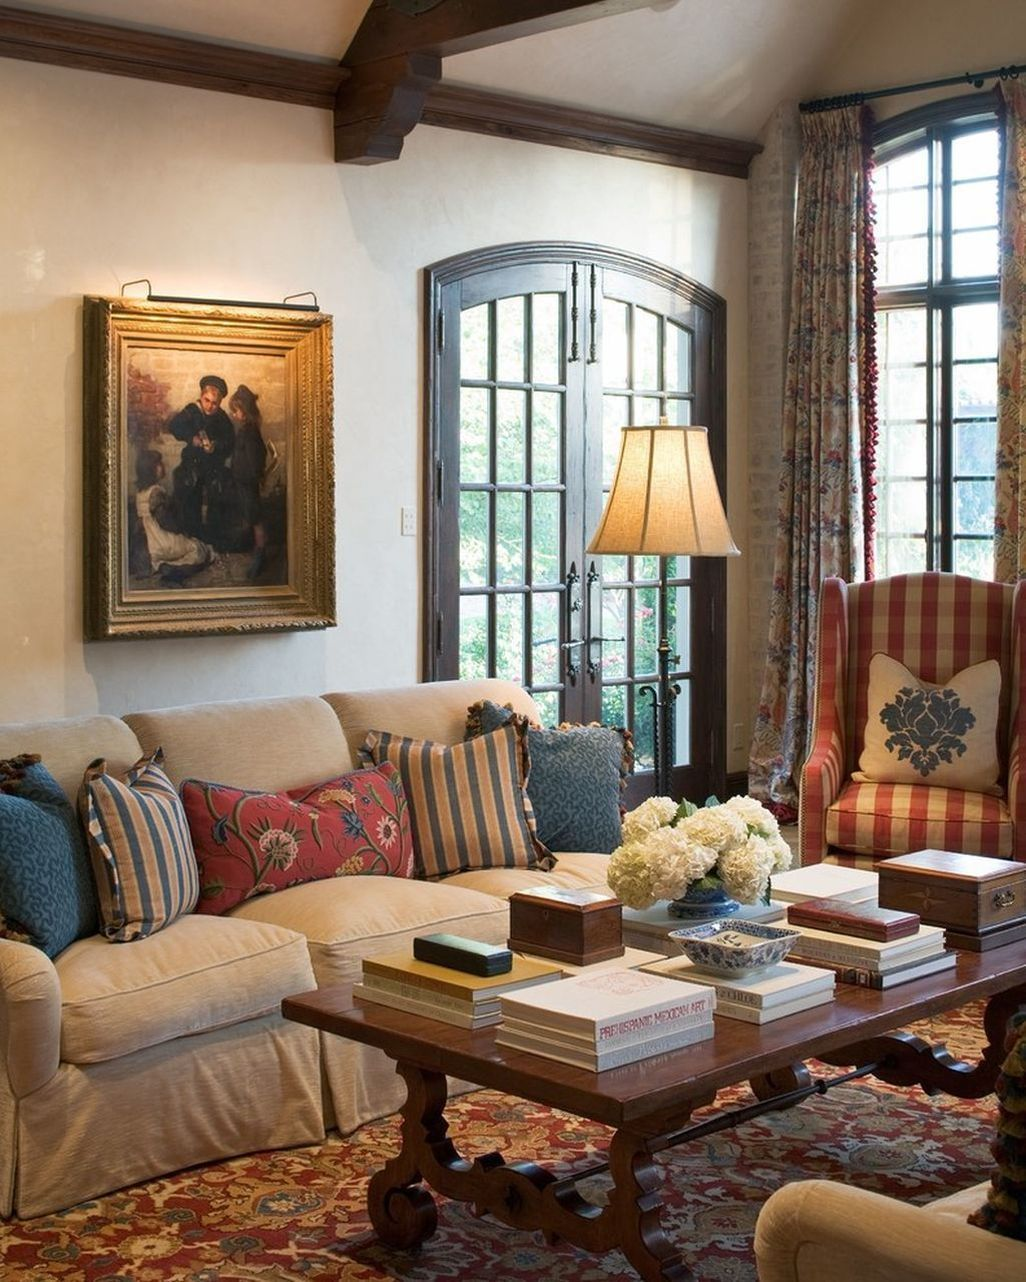 Stunning French Country Living Room Design Ideas 02 French Country Decorating Living Room French Cottage Living Room Living Room Decor Country Country decorated living rooms